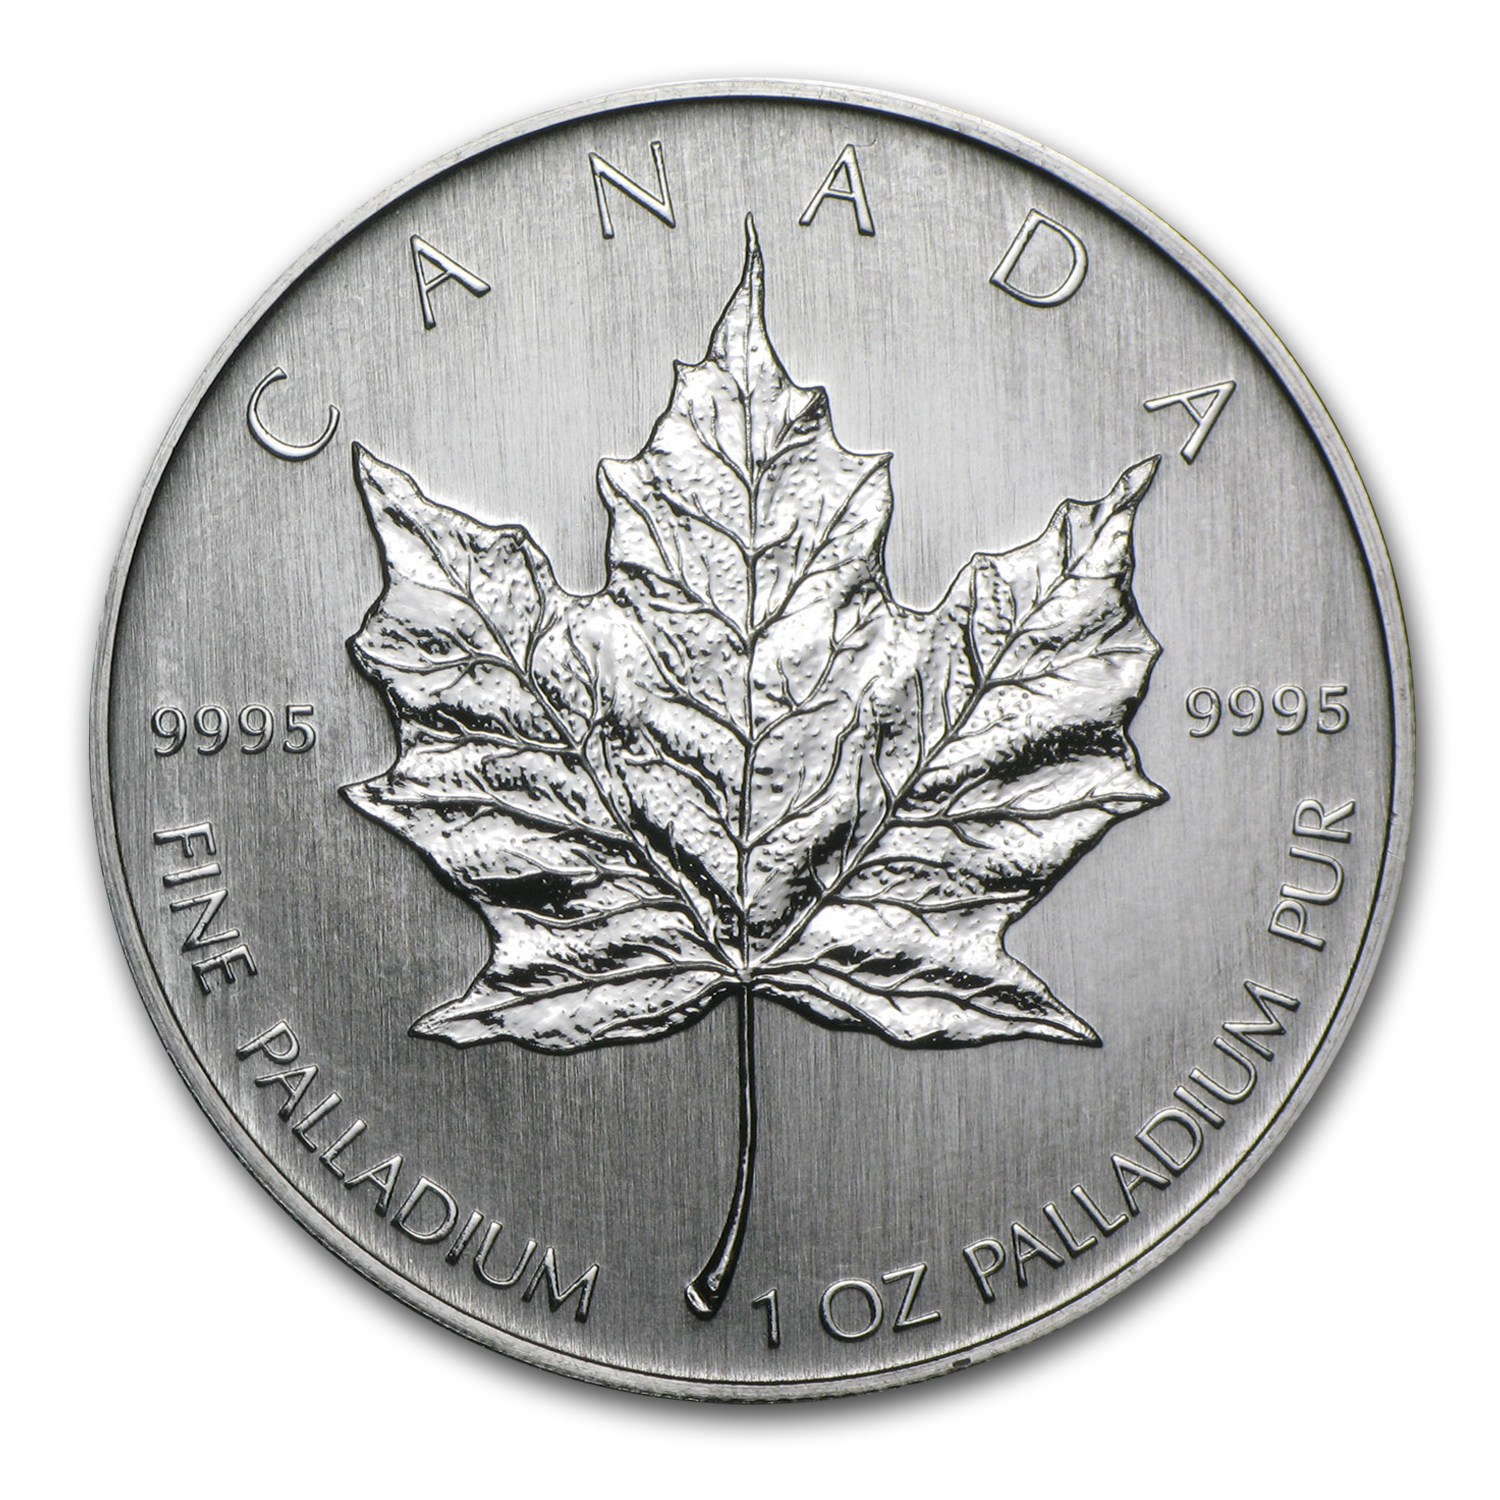 2005 Canada 1 oz Palladium Maple Leaf BU (Inaugural Issue)